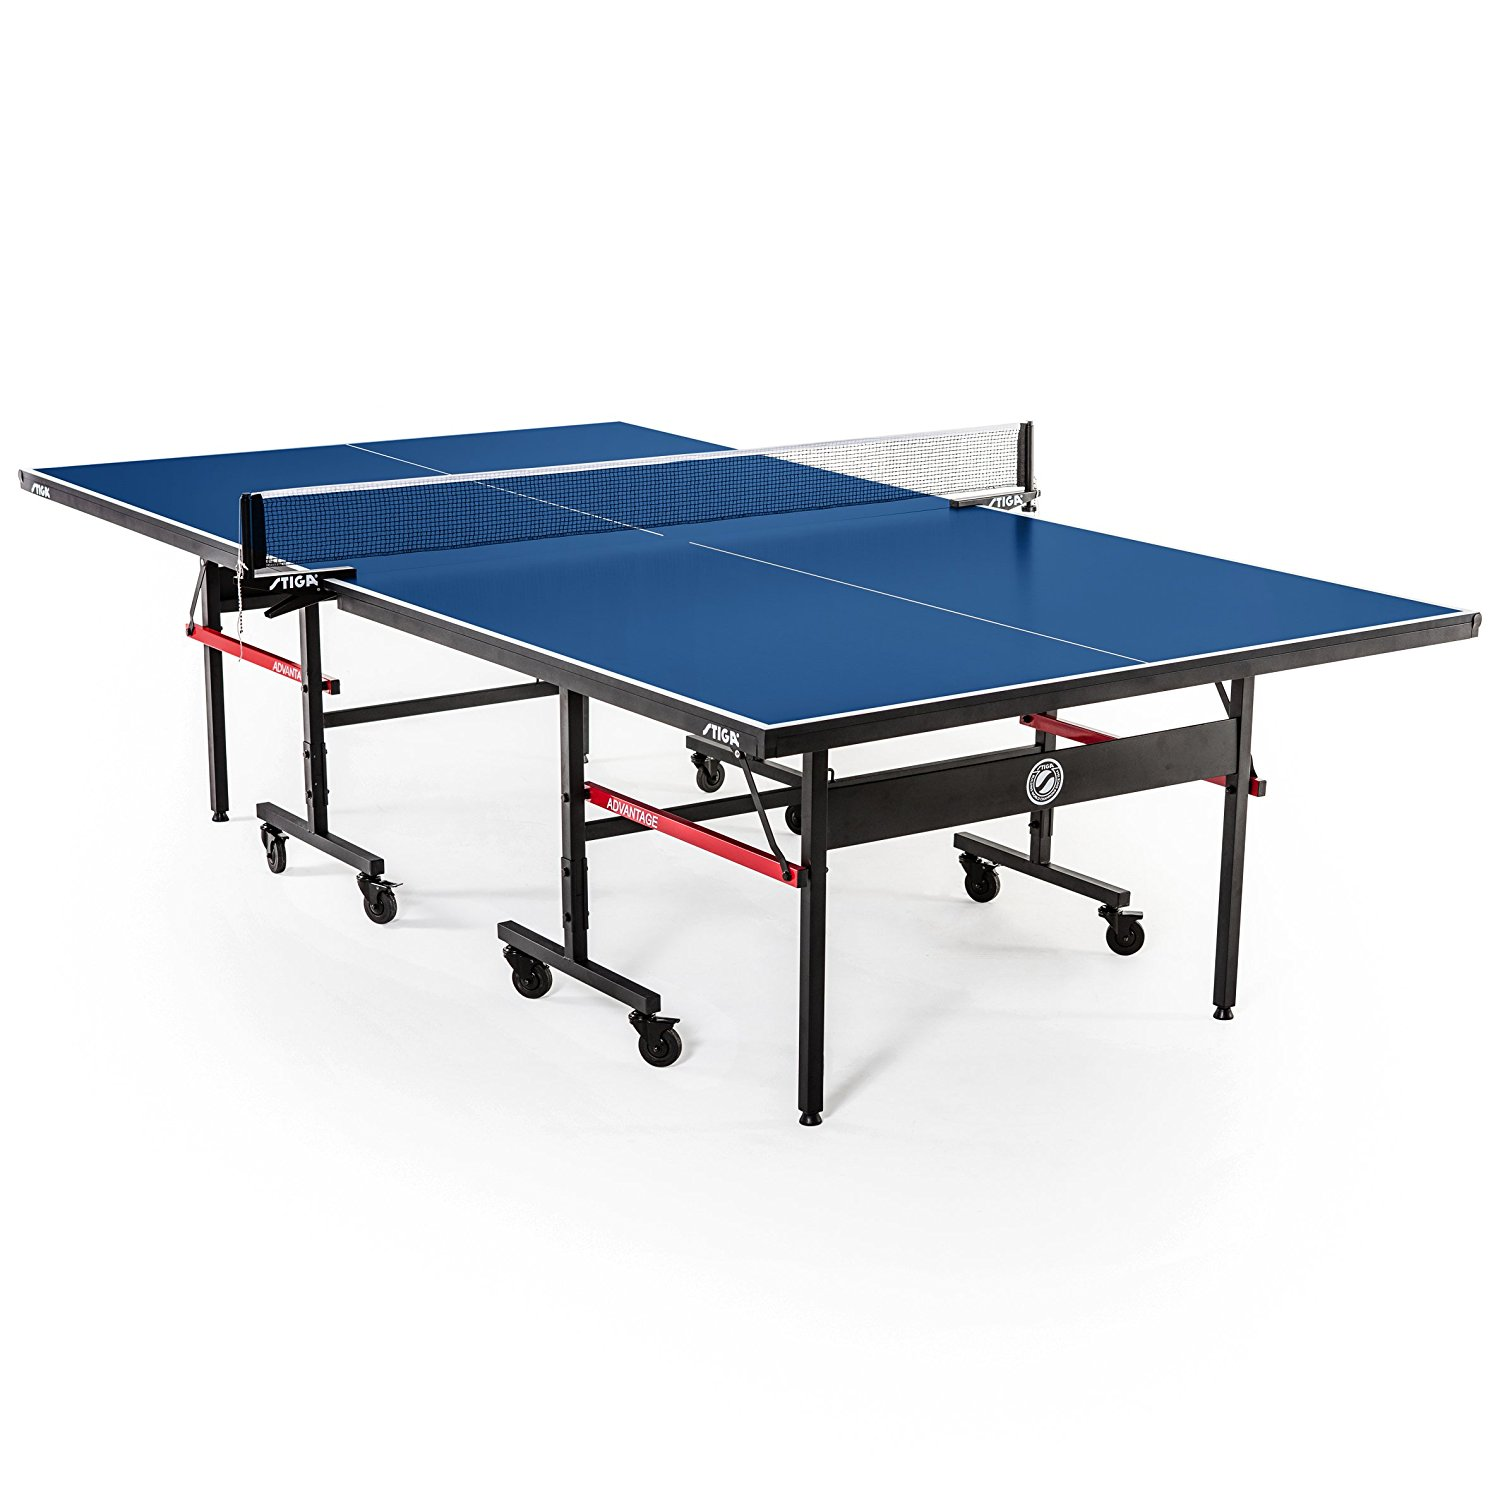 1d241065fc02 The 11 Best Ping Pong Tables of 2019 (Indoor   Outdoor Reviews)